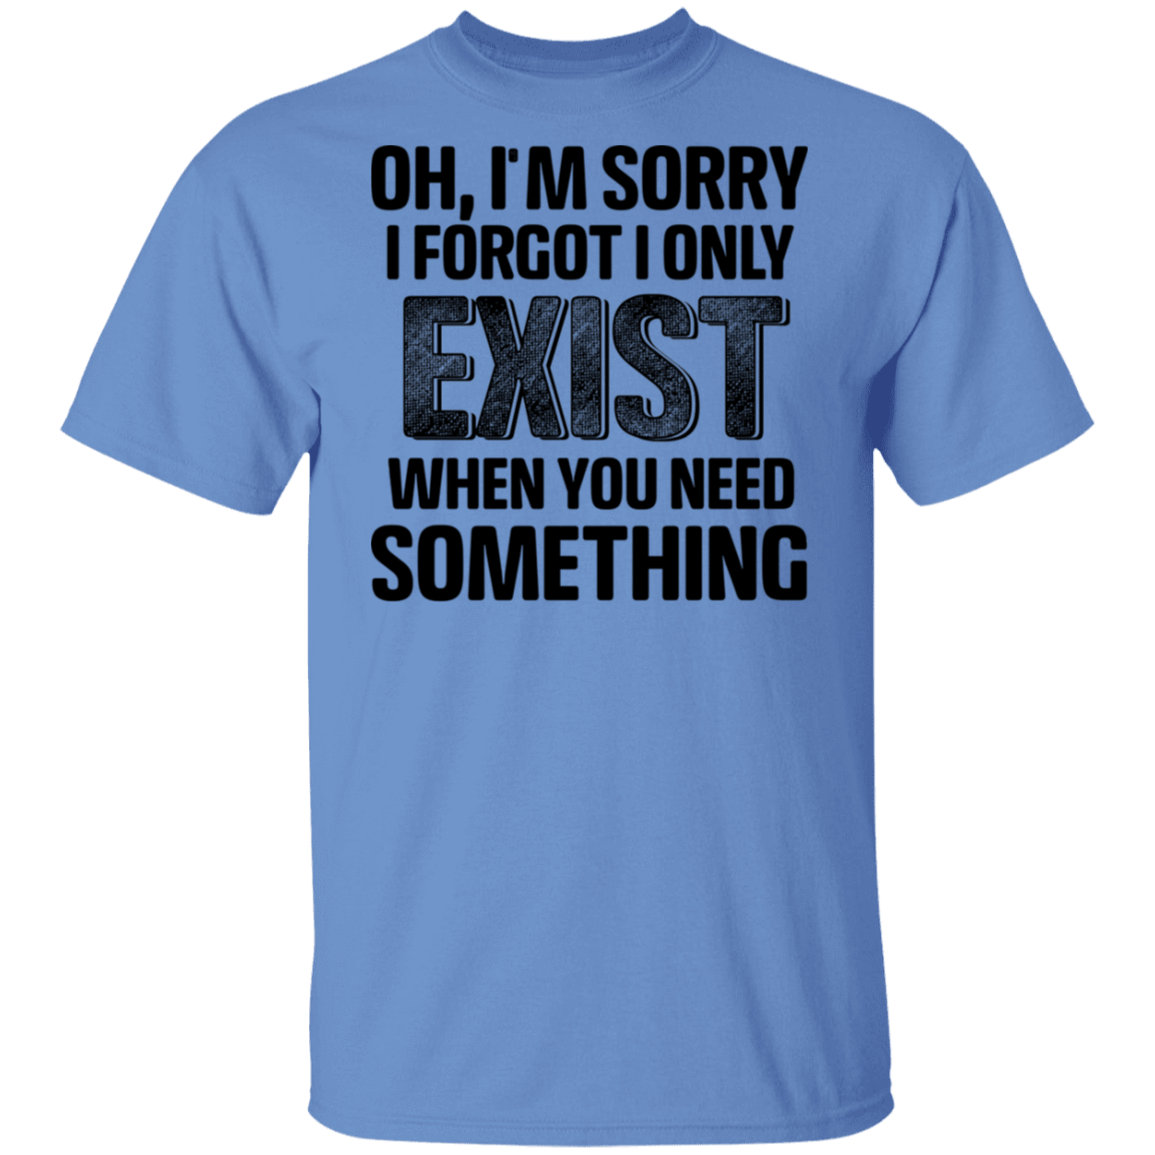 Oh I'm Sorry I Forgot I Only Exist When You Need Something T-Shirts, Hoodies, Tank 1049-9955-80344249-48160 - Tee Ript